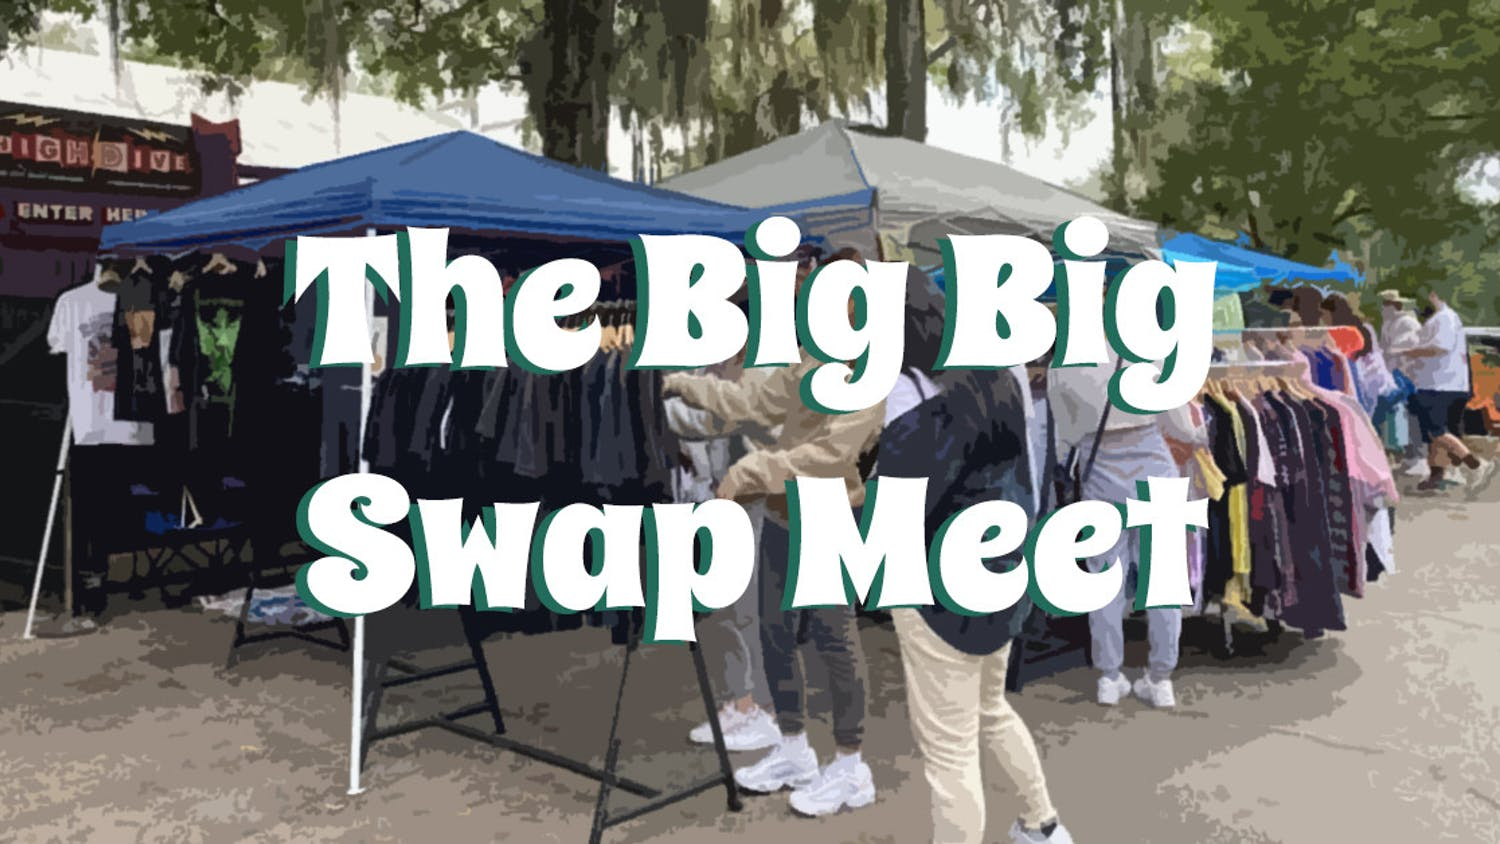 The Big Big Swap Meet took place at Heartwood Soundstage Sept. 19.